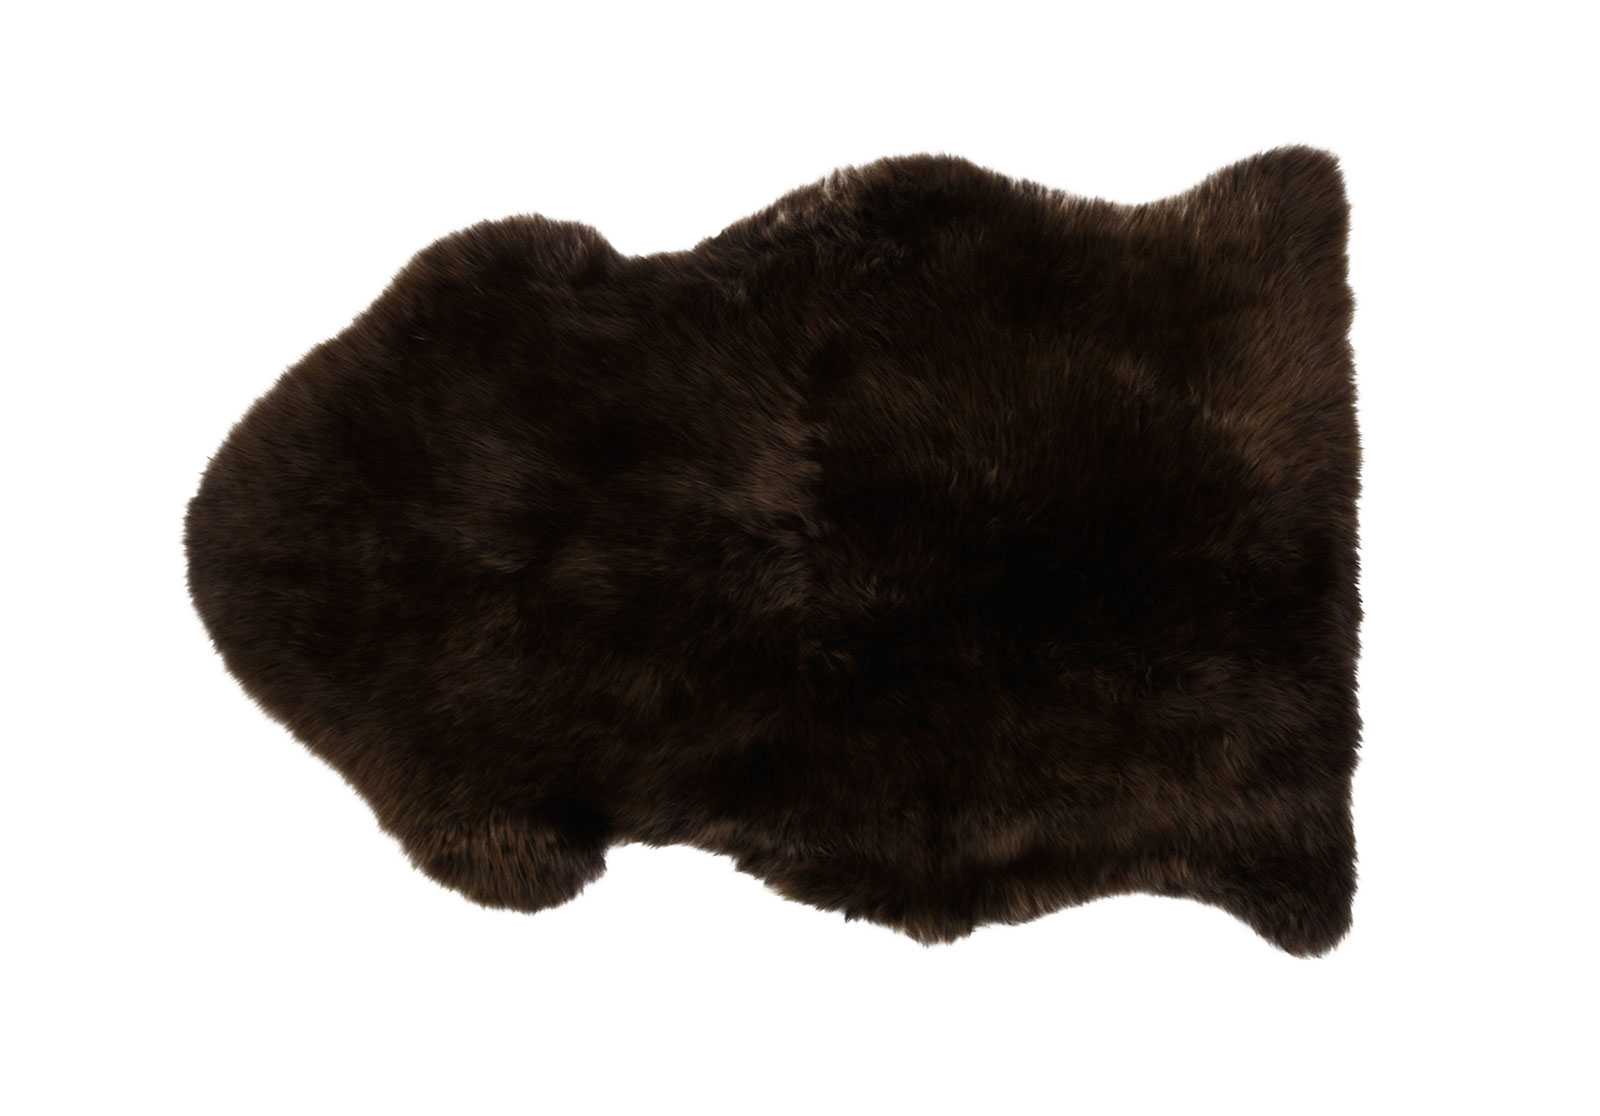 Chocolate Brown Sheepskin Rug